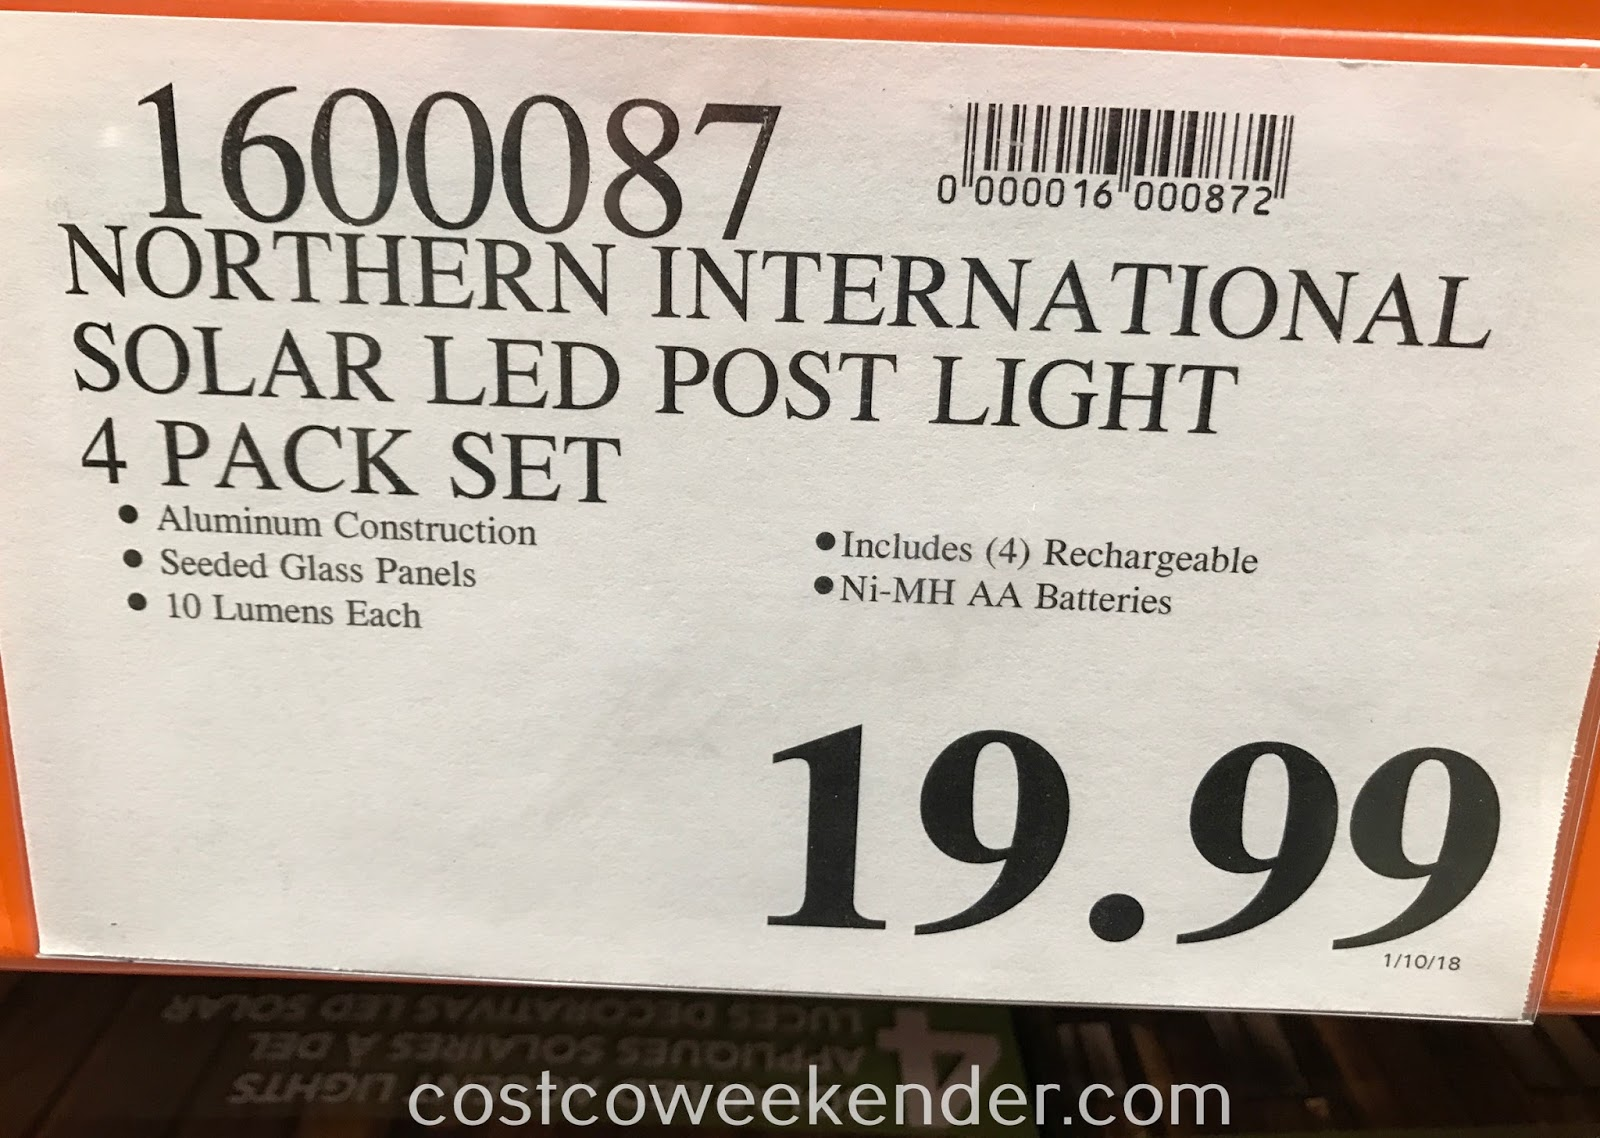 Deal for the Paradise Northern International Solar LED Accent Post Lights at Costco